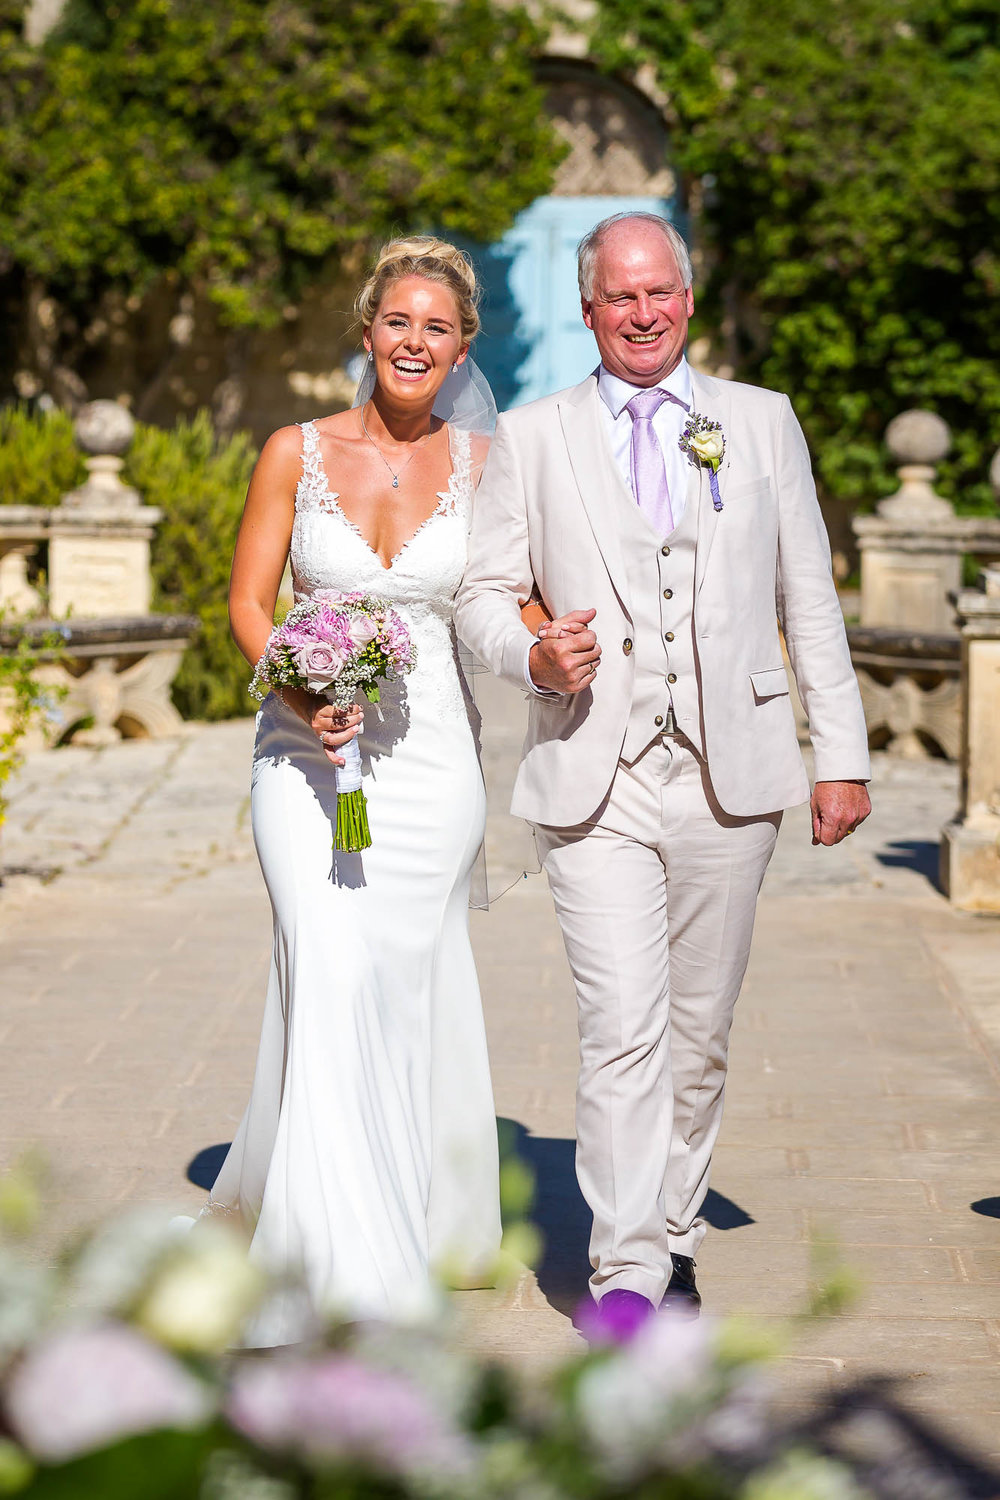 Happy bride and her father arrive at the garden civil ceremony. Photo by Elliot Nichol Photography.